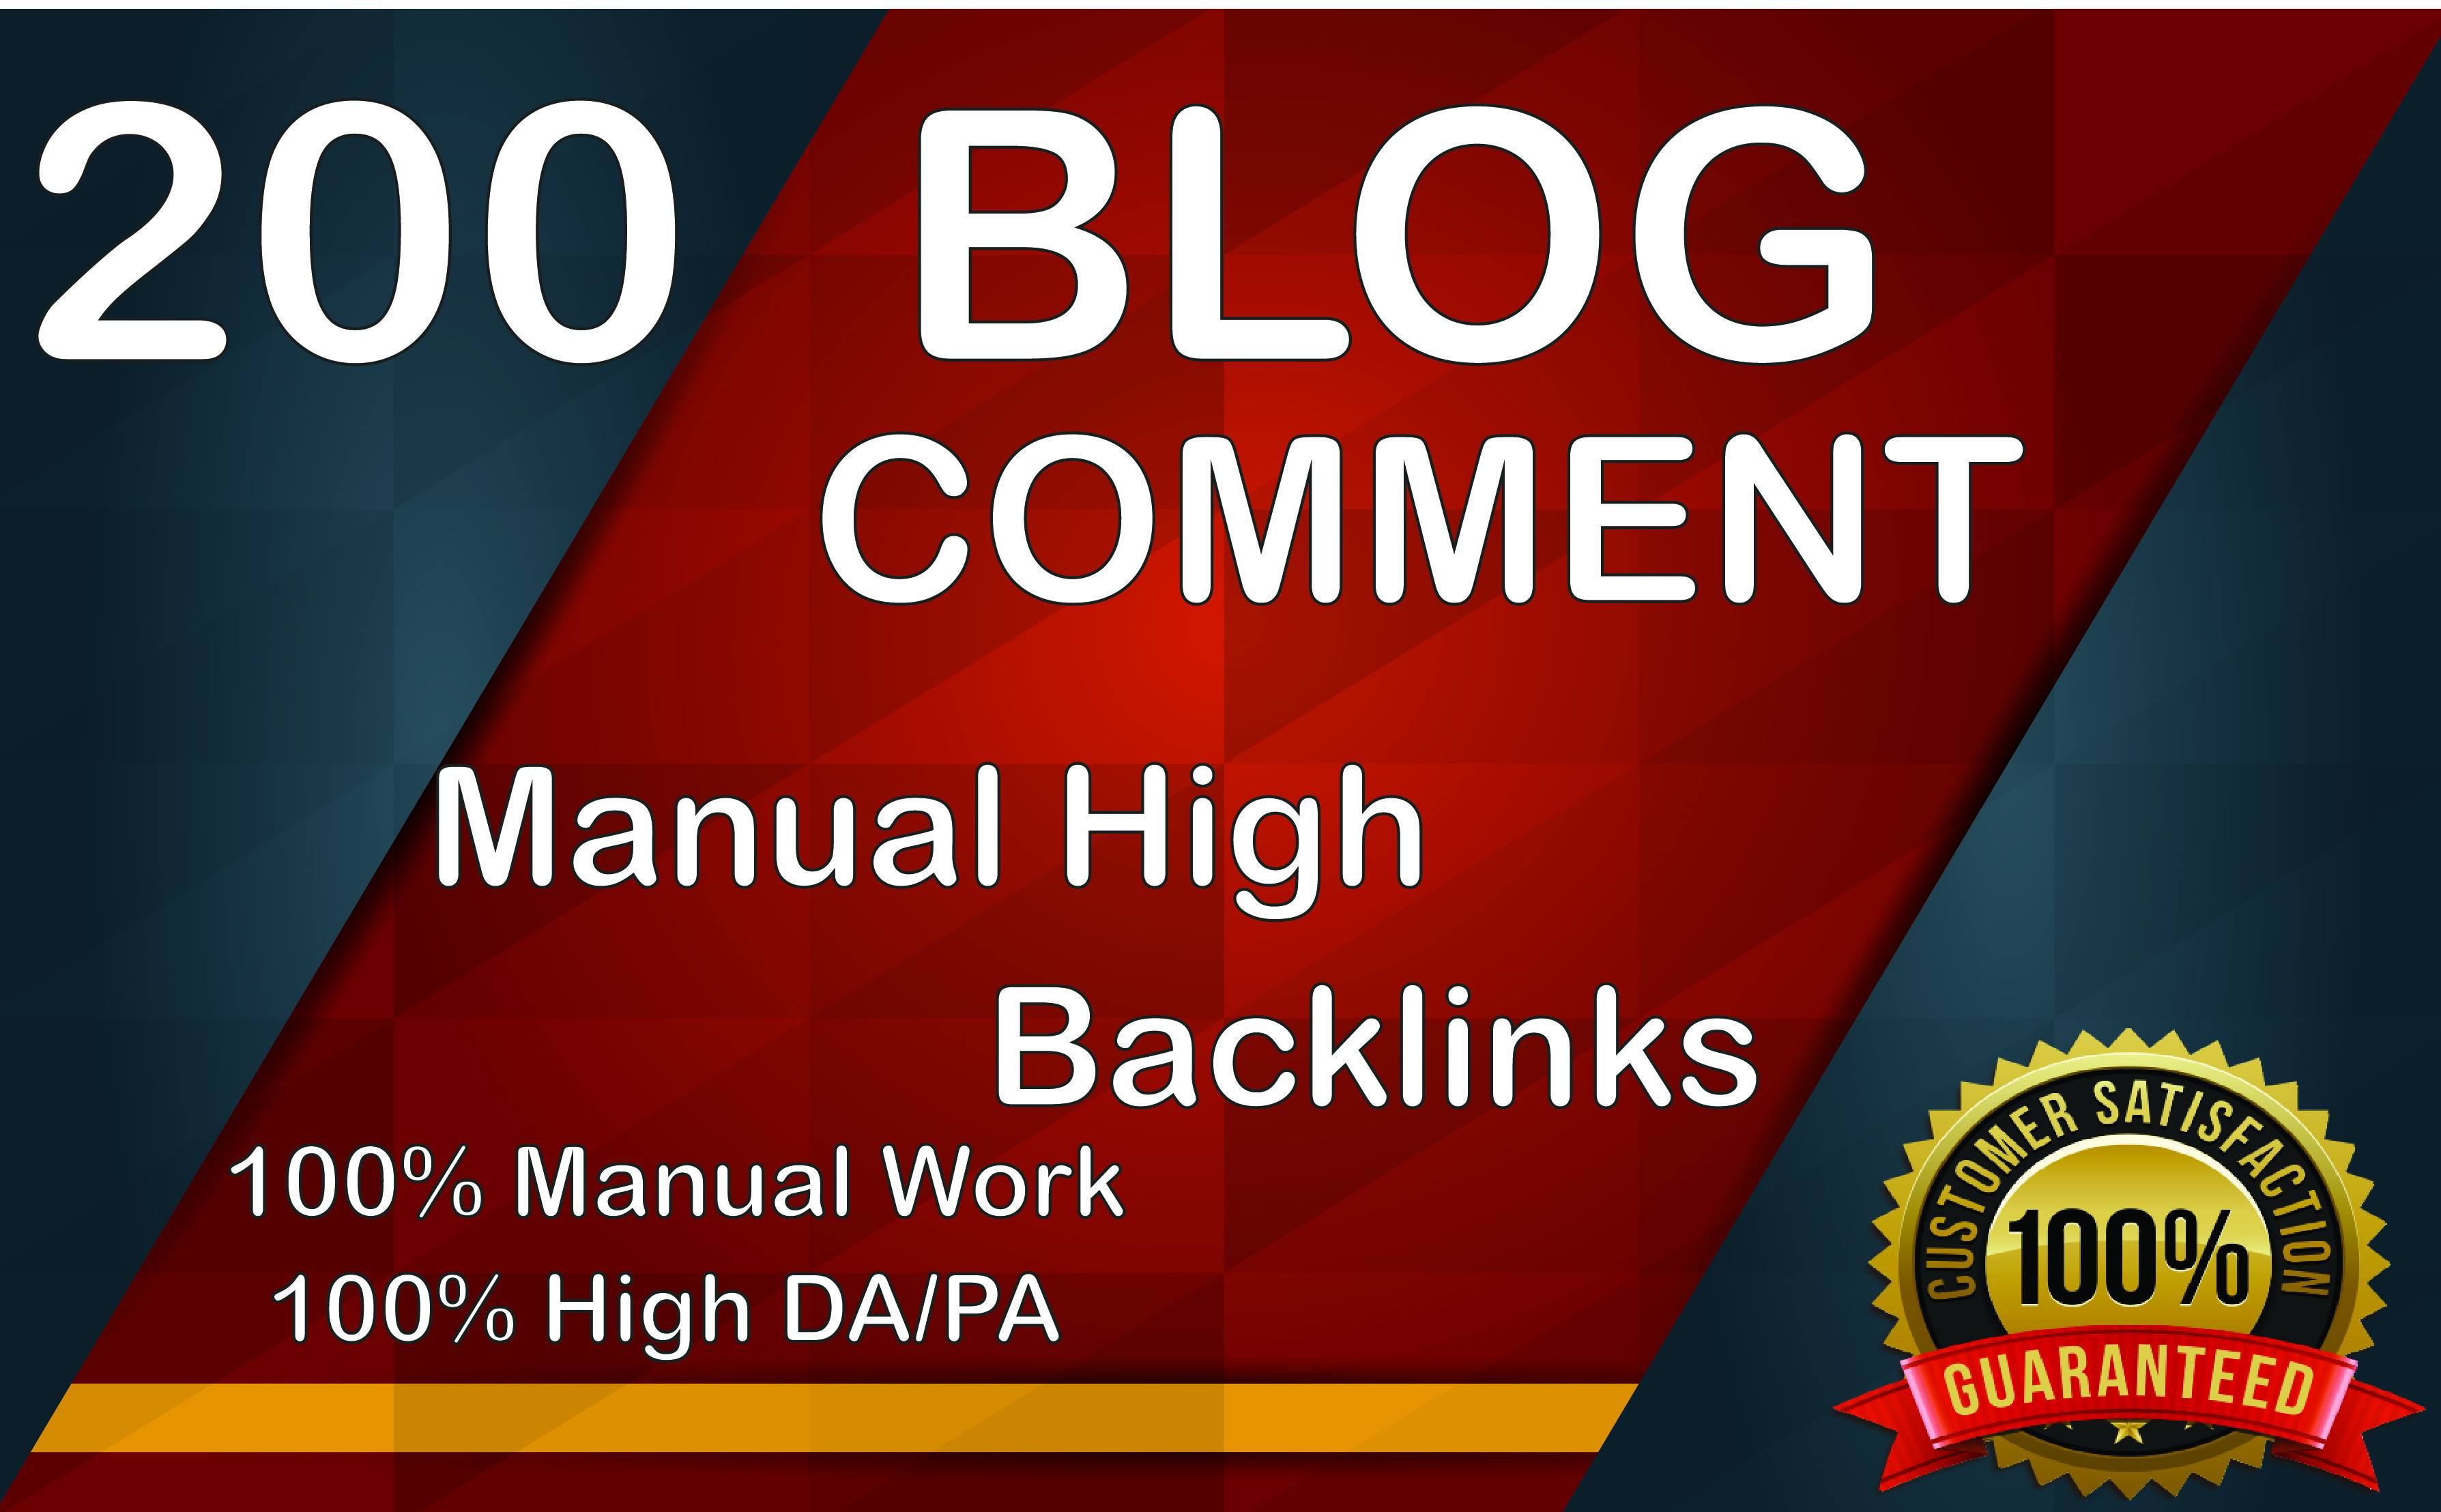 I will do 200 blogcomment dofollow backlink